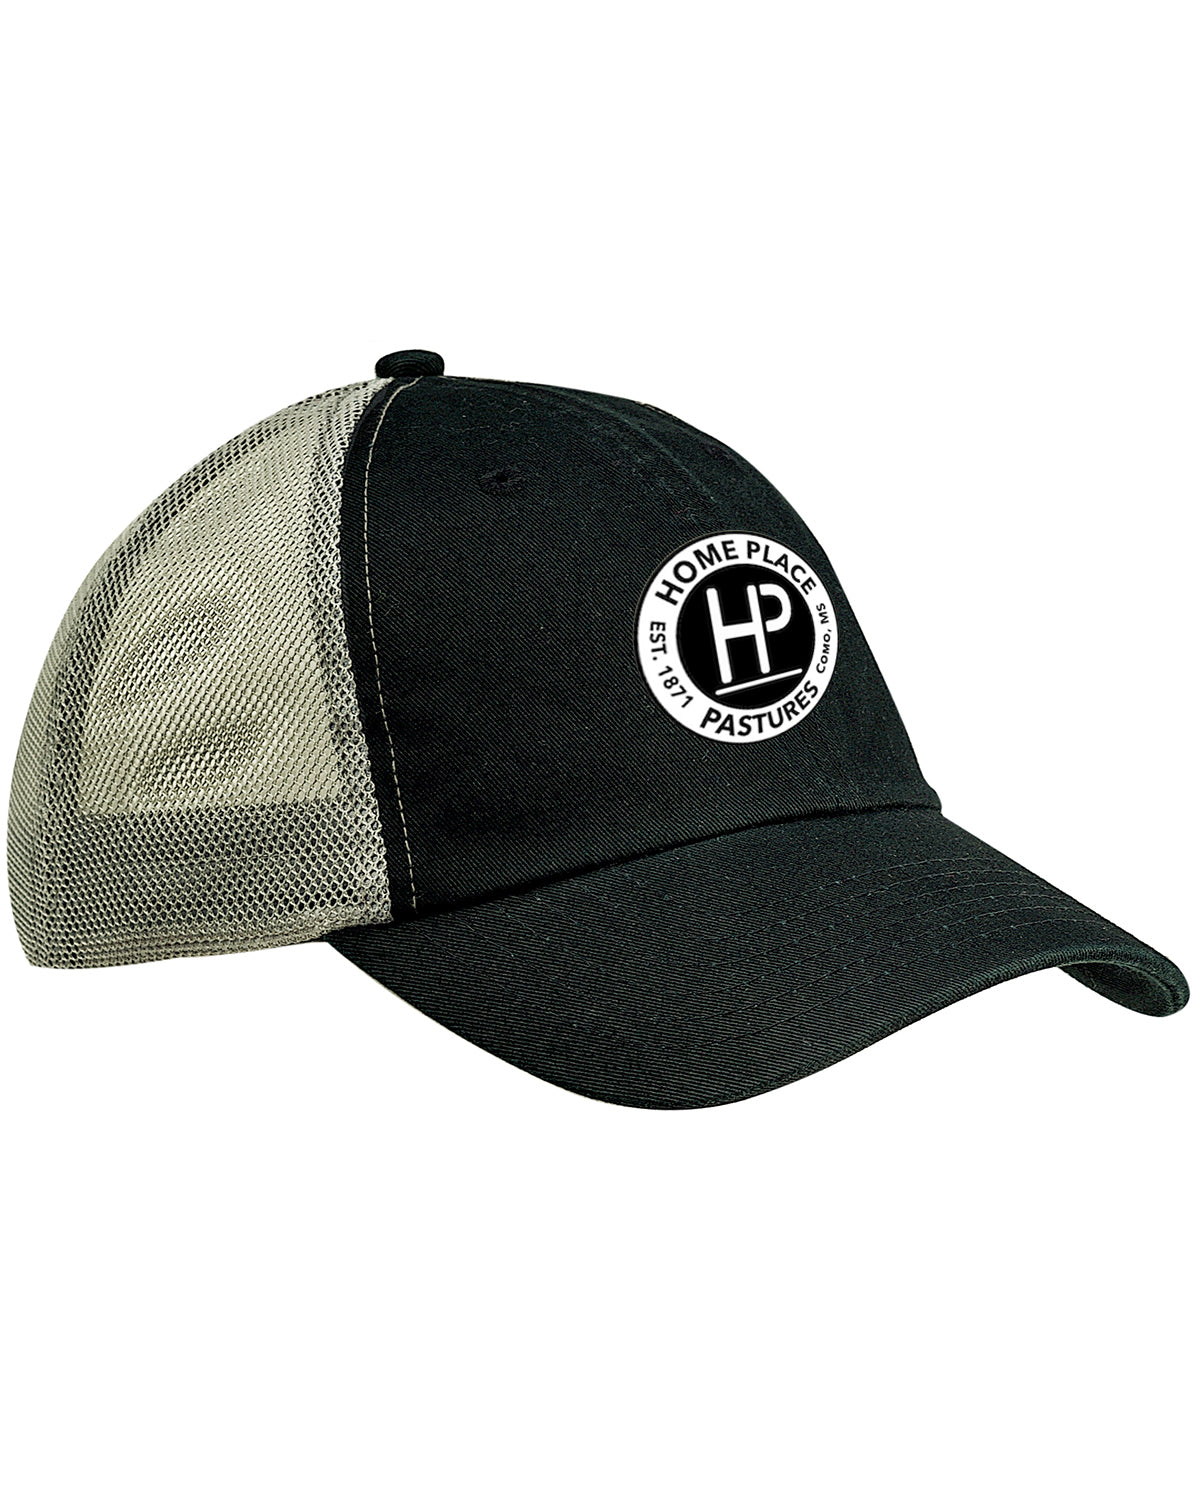 Home Place Hat